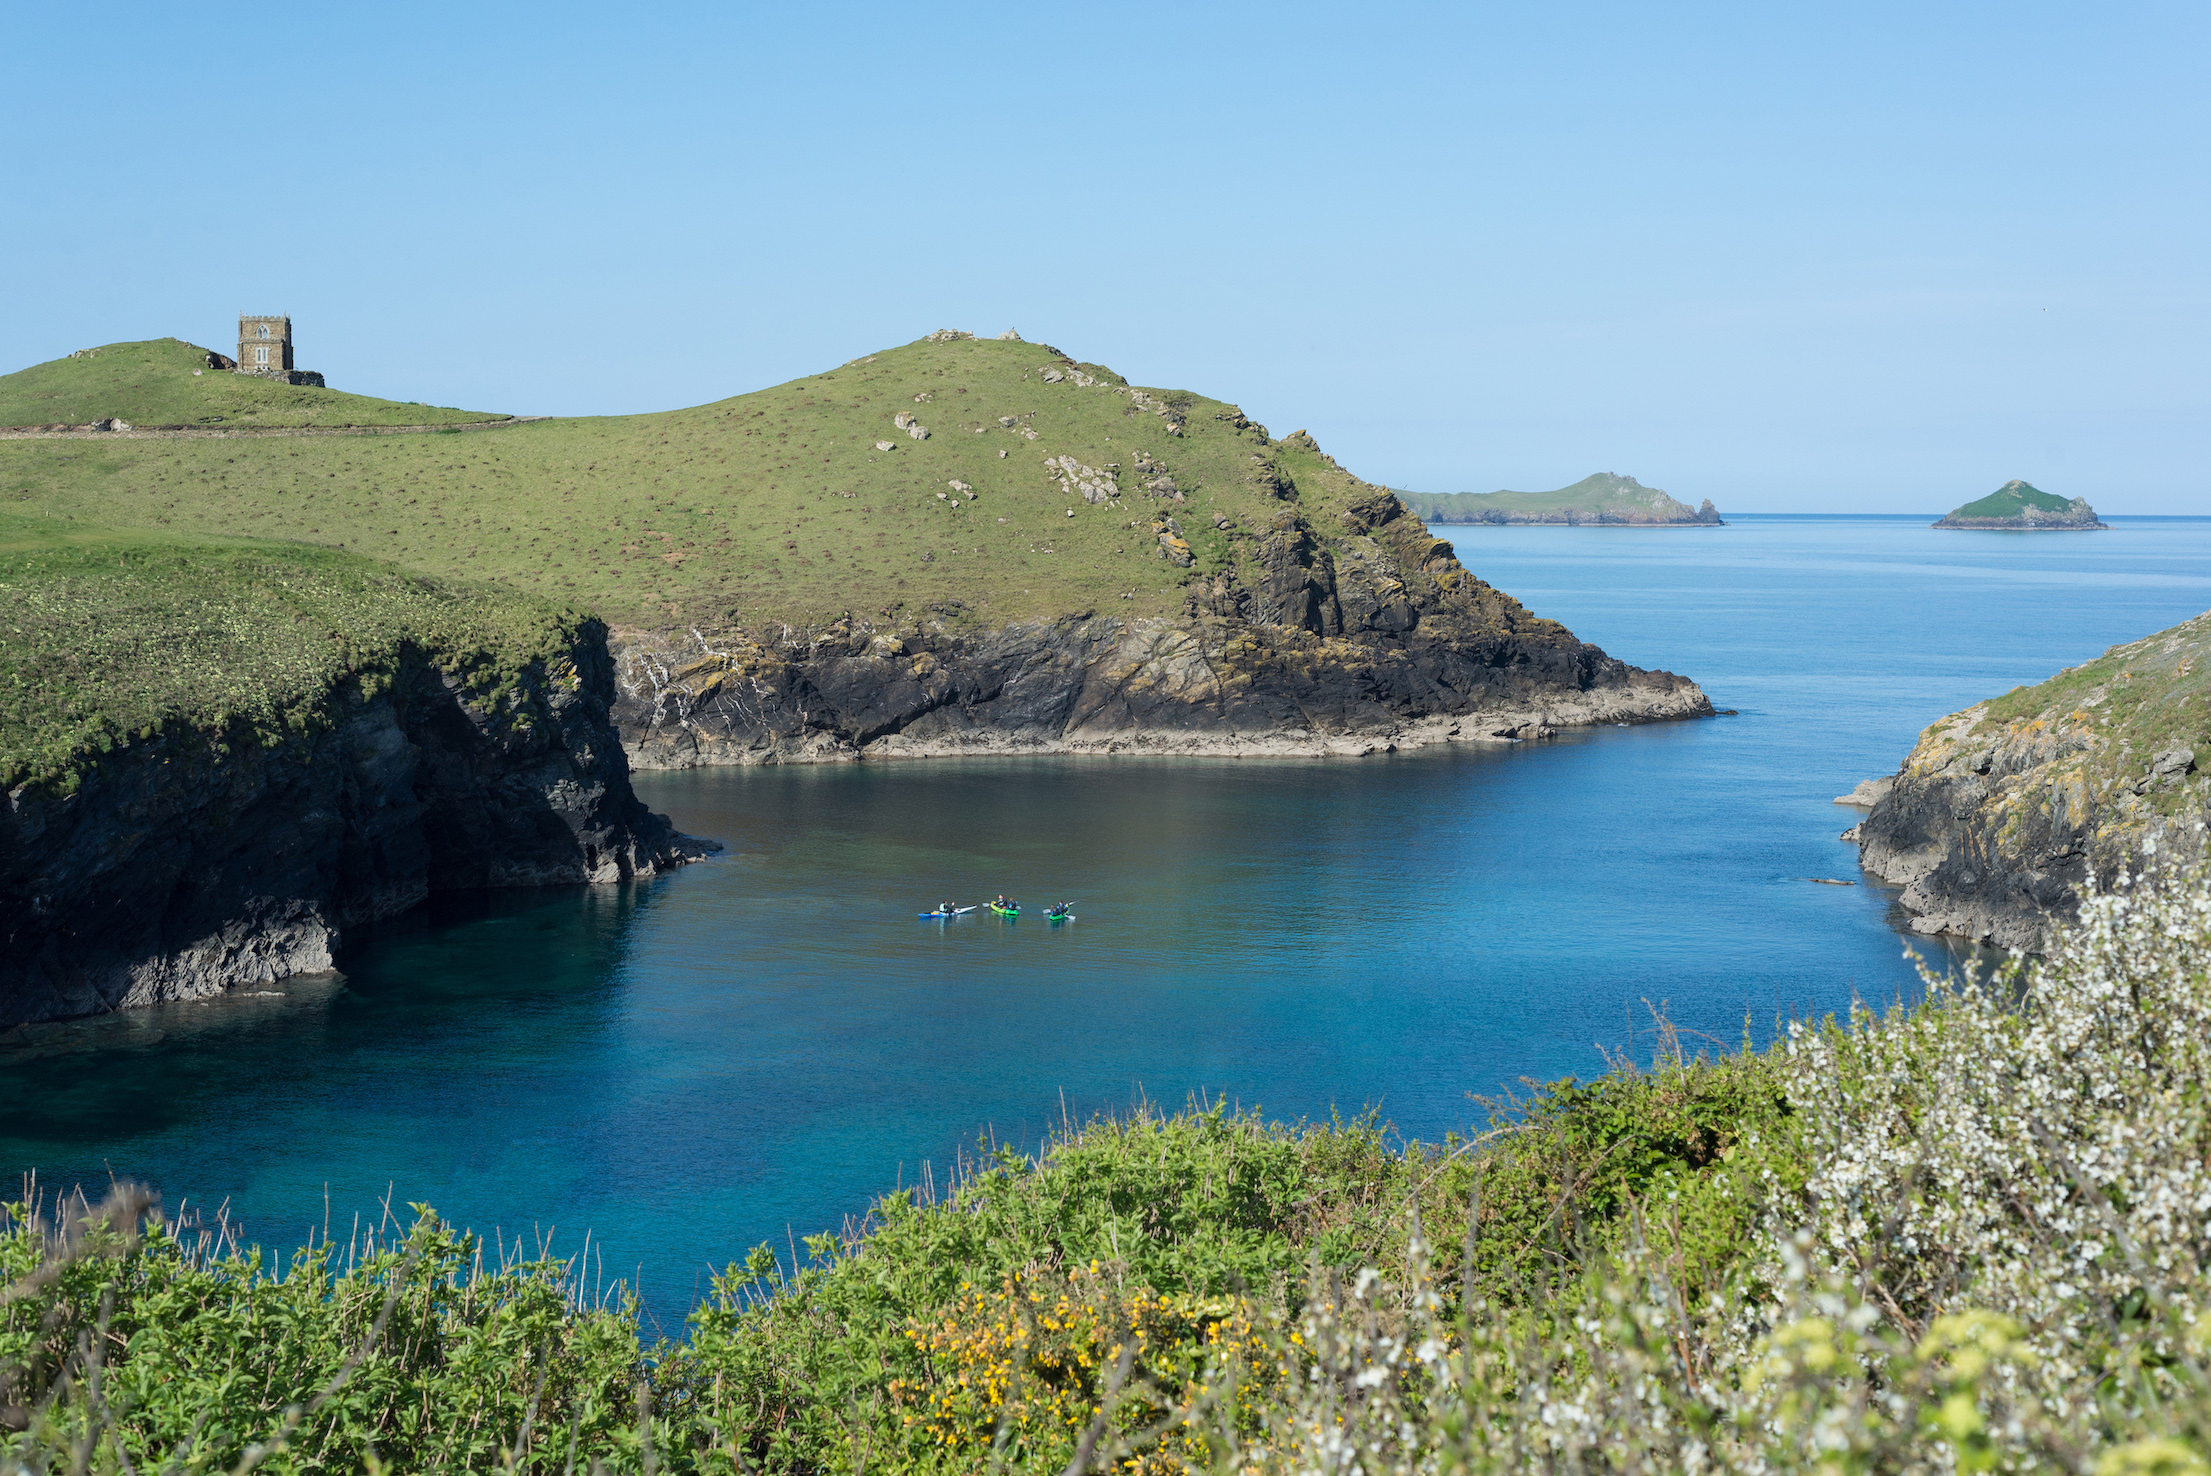 E.g. 'Kayak tours Cornwall' Port Quin, Port Gaverne  and Port Isaac